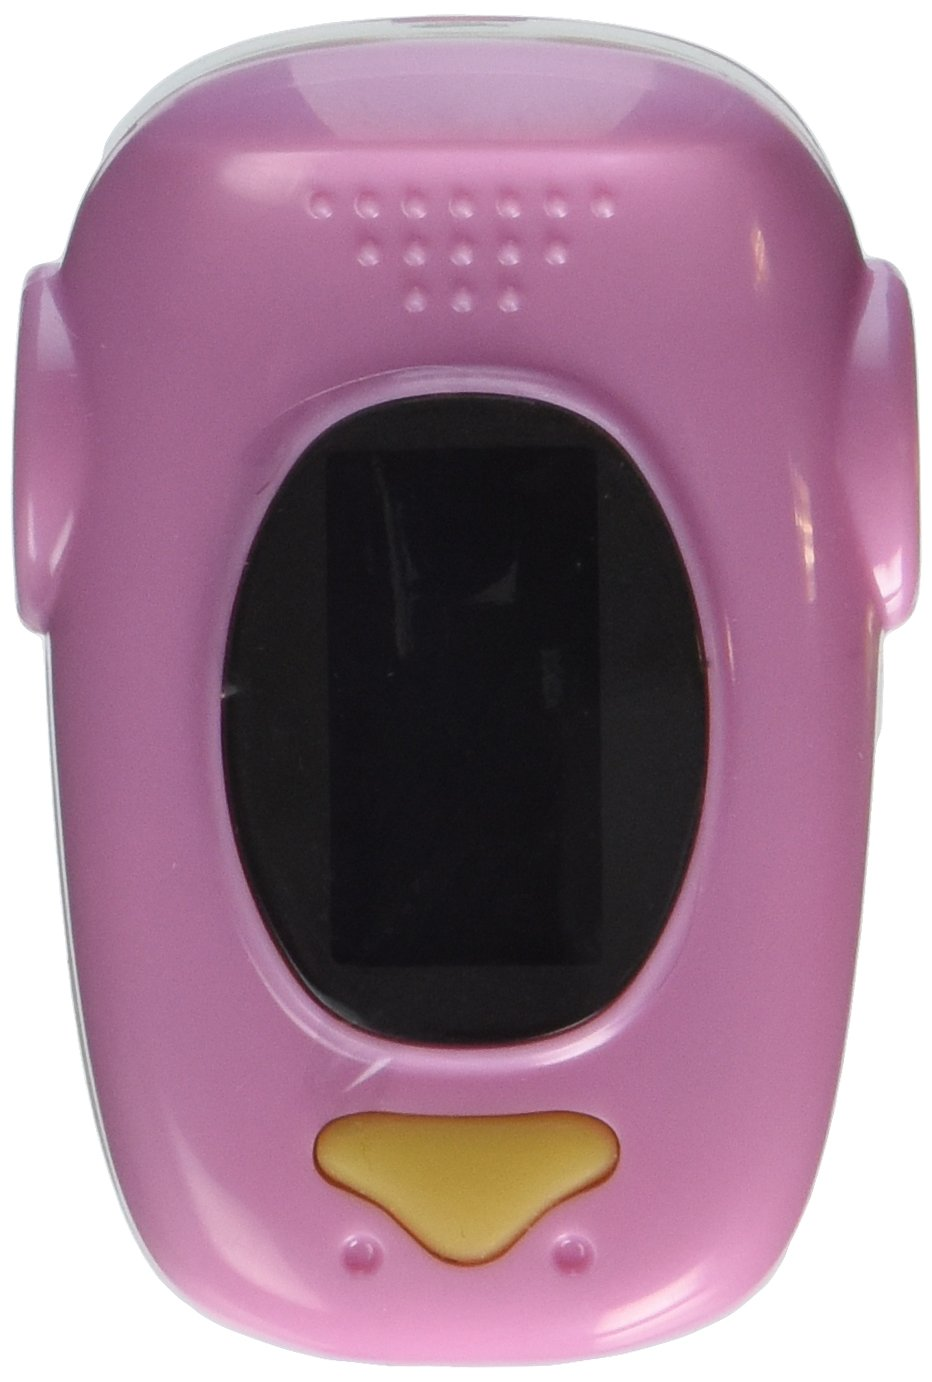 EMS70A Finger Pulse Oximeter with Carry Case and Neck/wrist Cord (PINK)